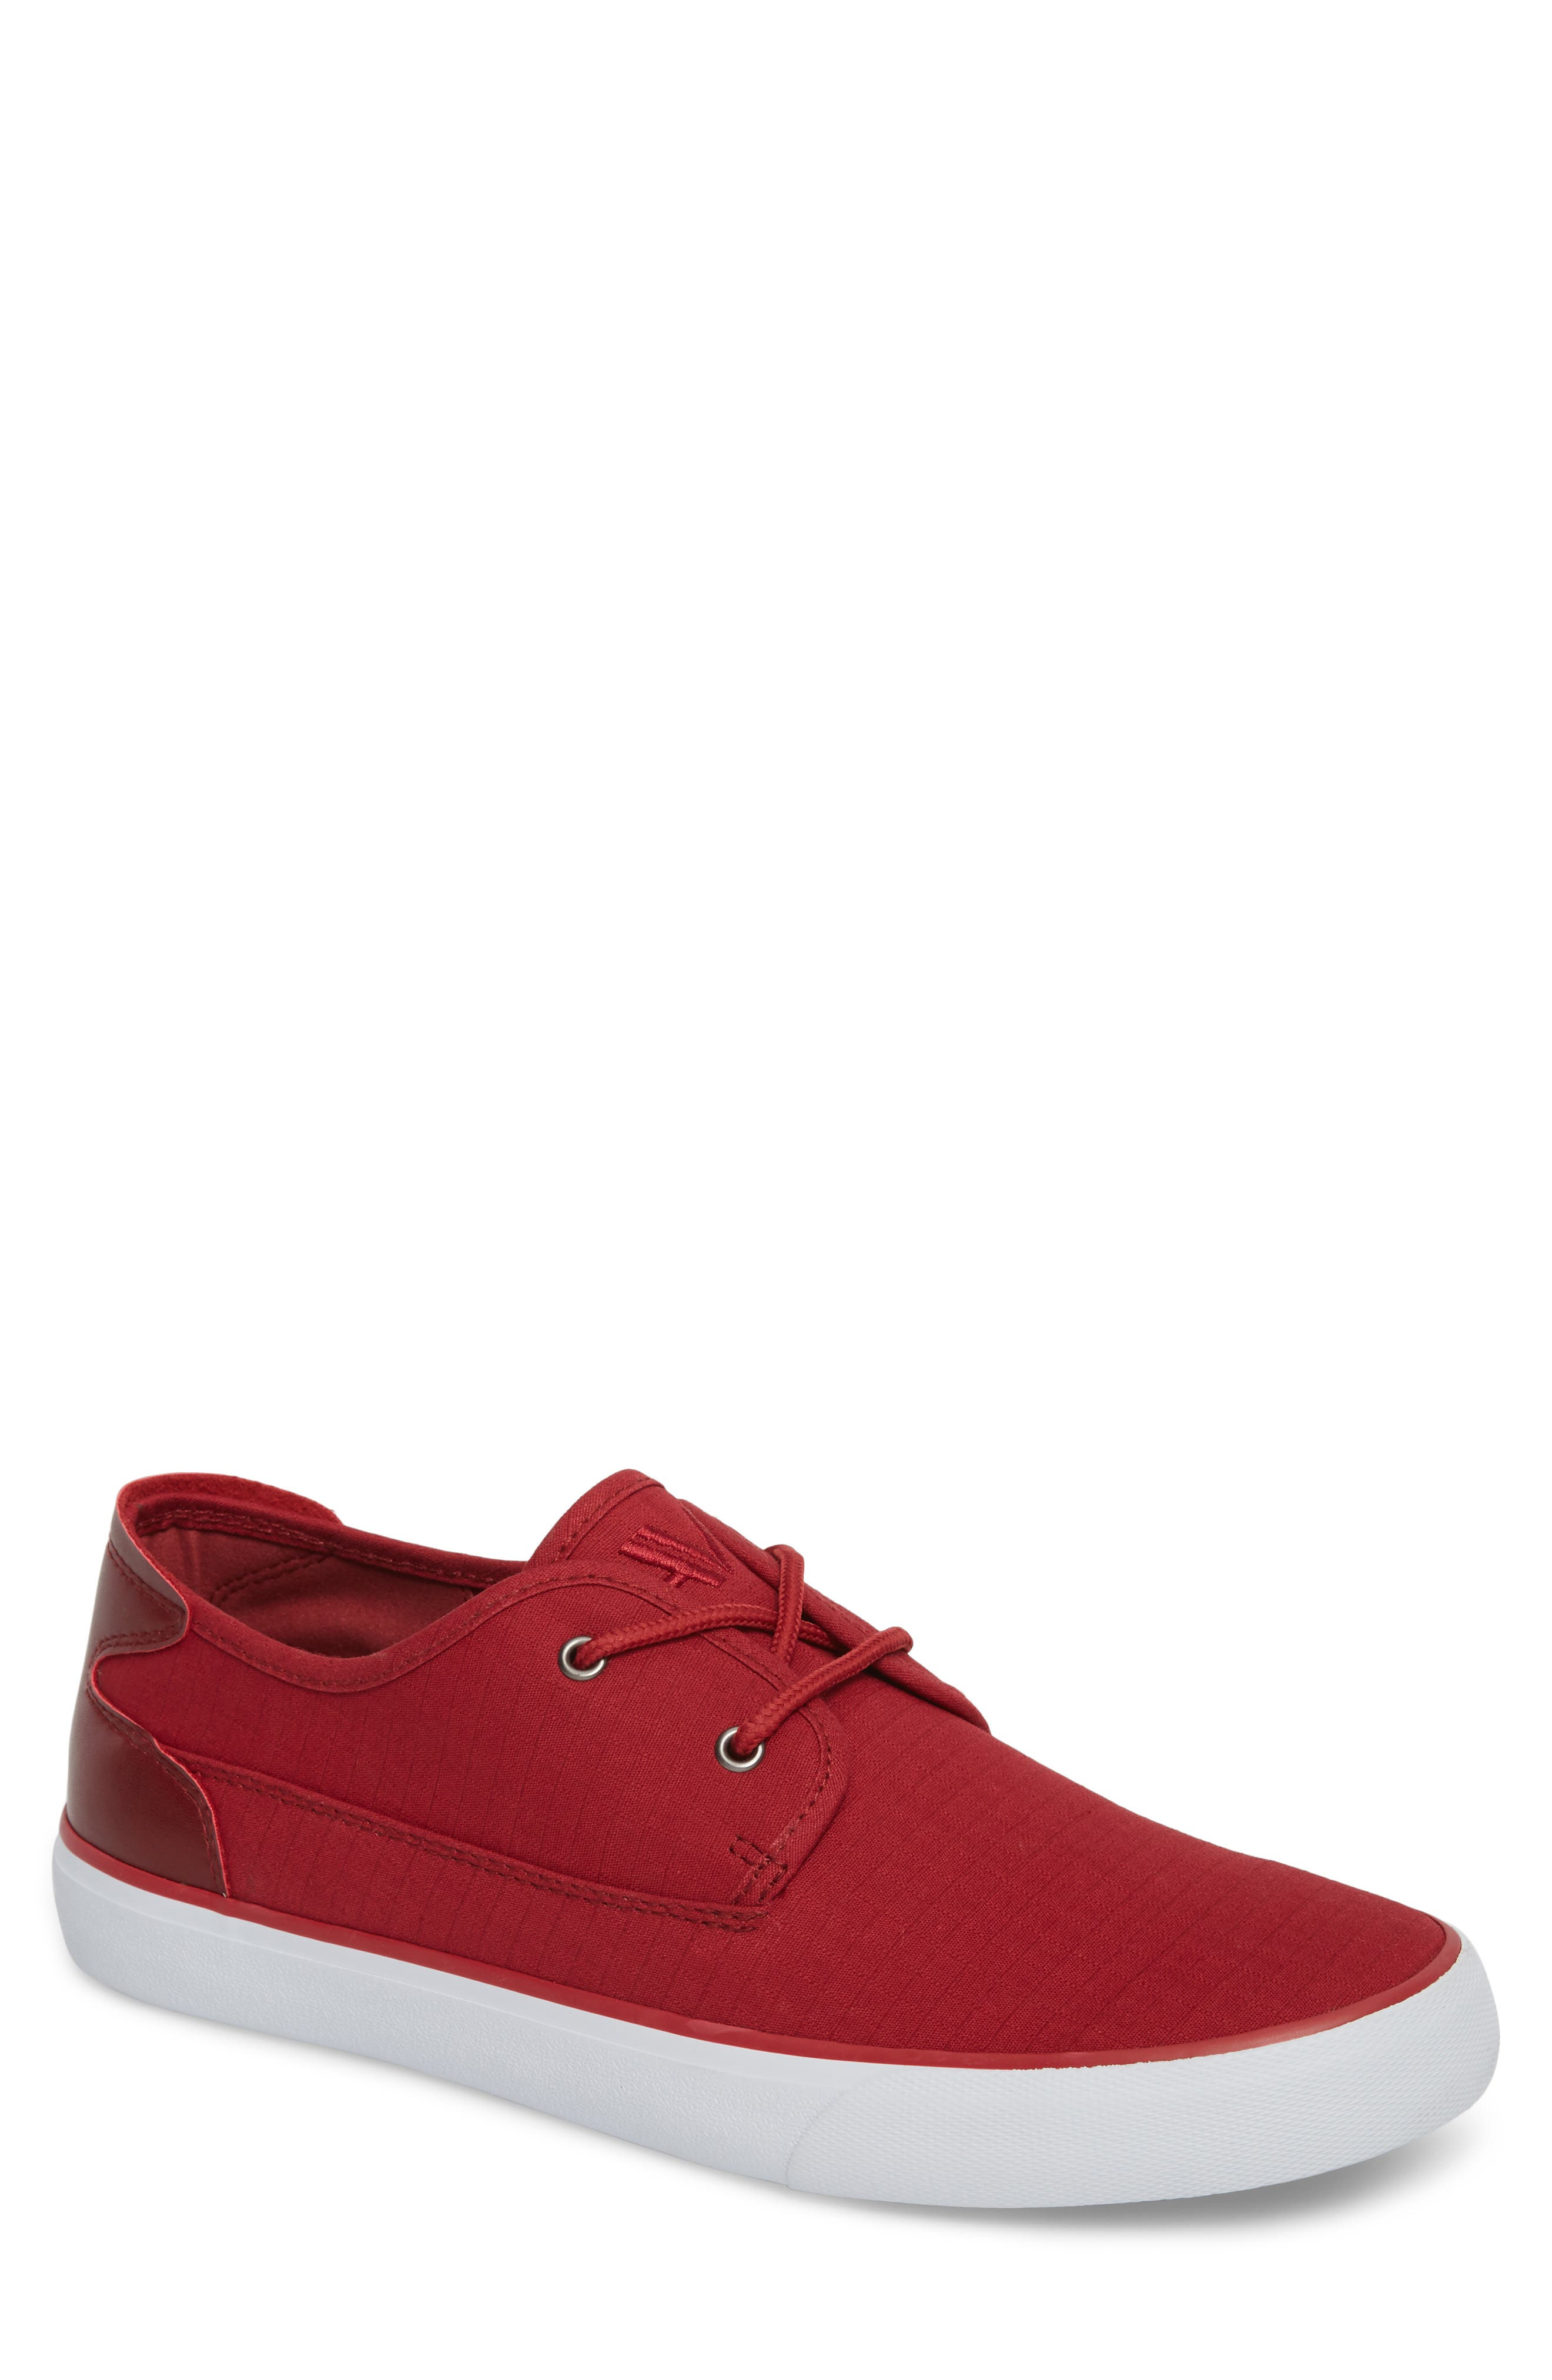 Morris Sneaker,                         Main,                         color, Red/ White